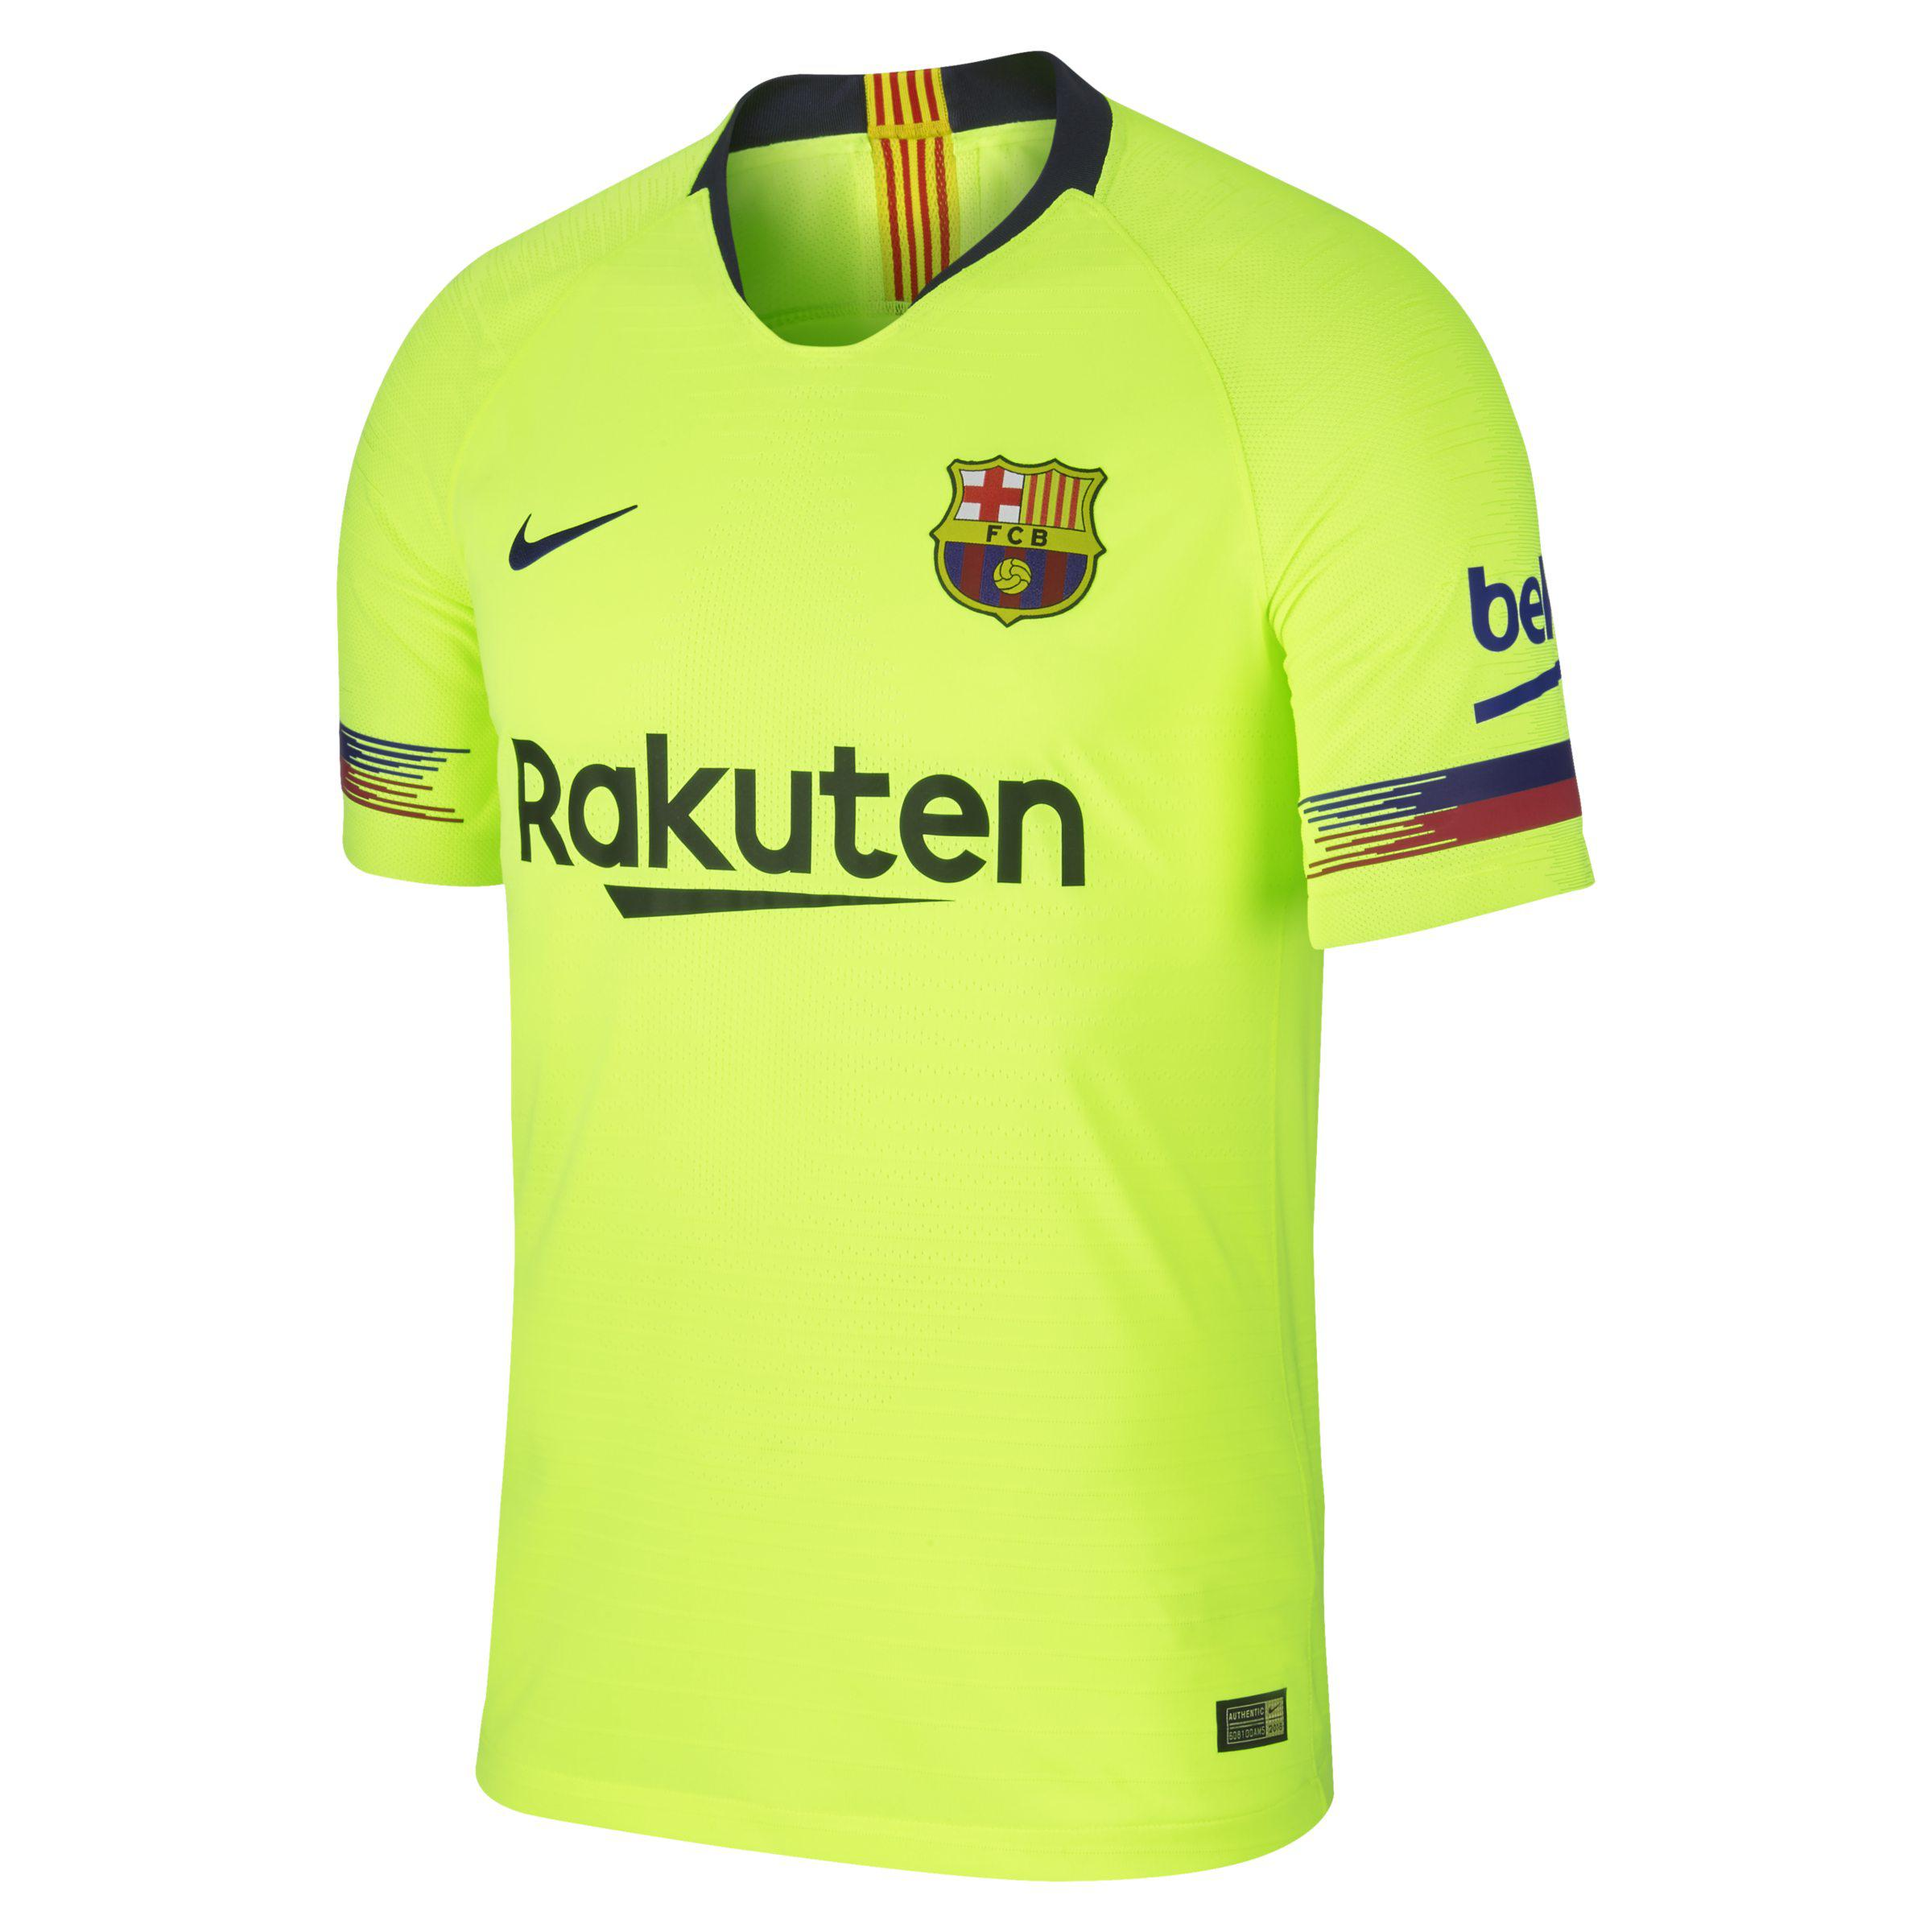 eb63c3d2e8 Nike 2018 19 Fc Barcelona Vapor Match Away Football Shirt in Yellow ...